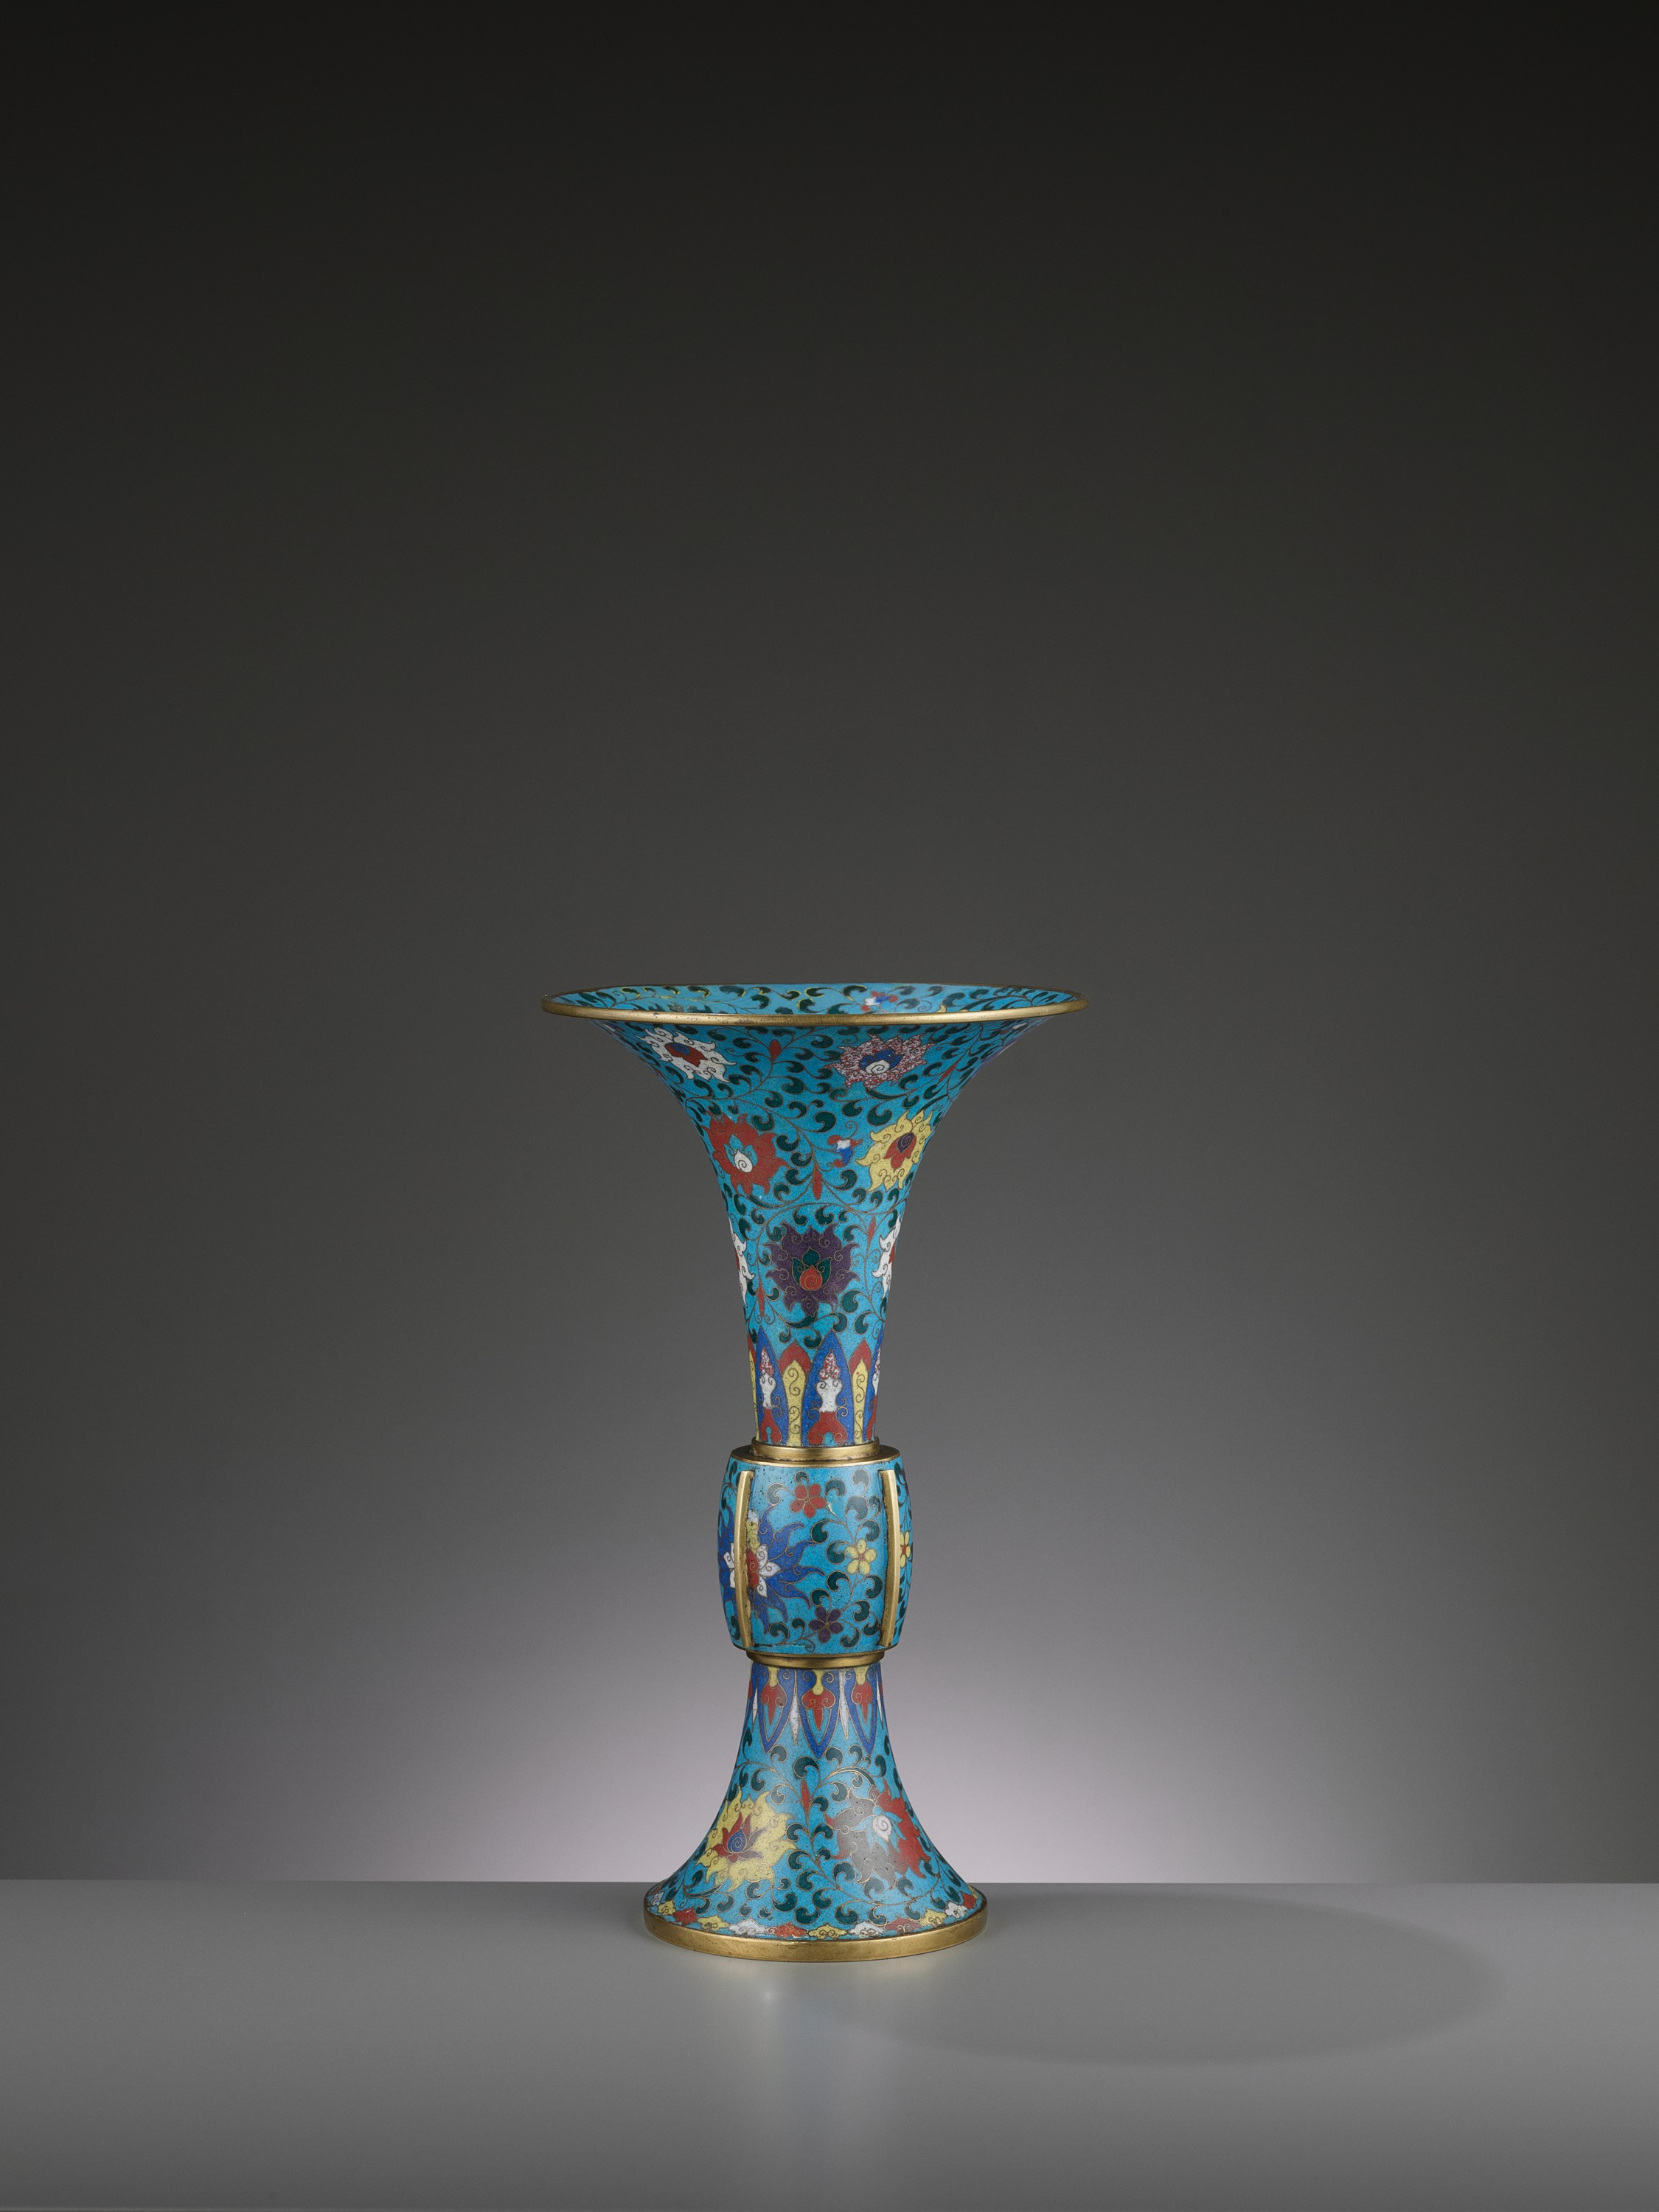 A LARGE CLOISONNE AND GILT-BRONZE GU, QING DYNASTY - Image 3 of 6